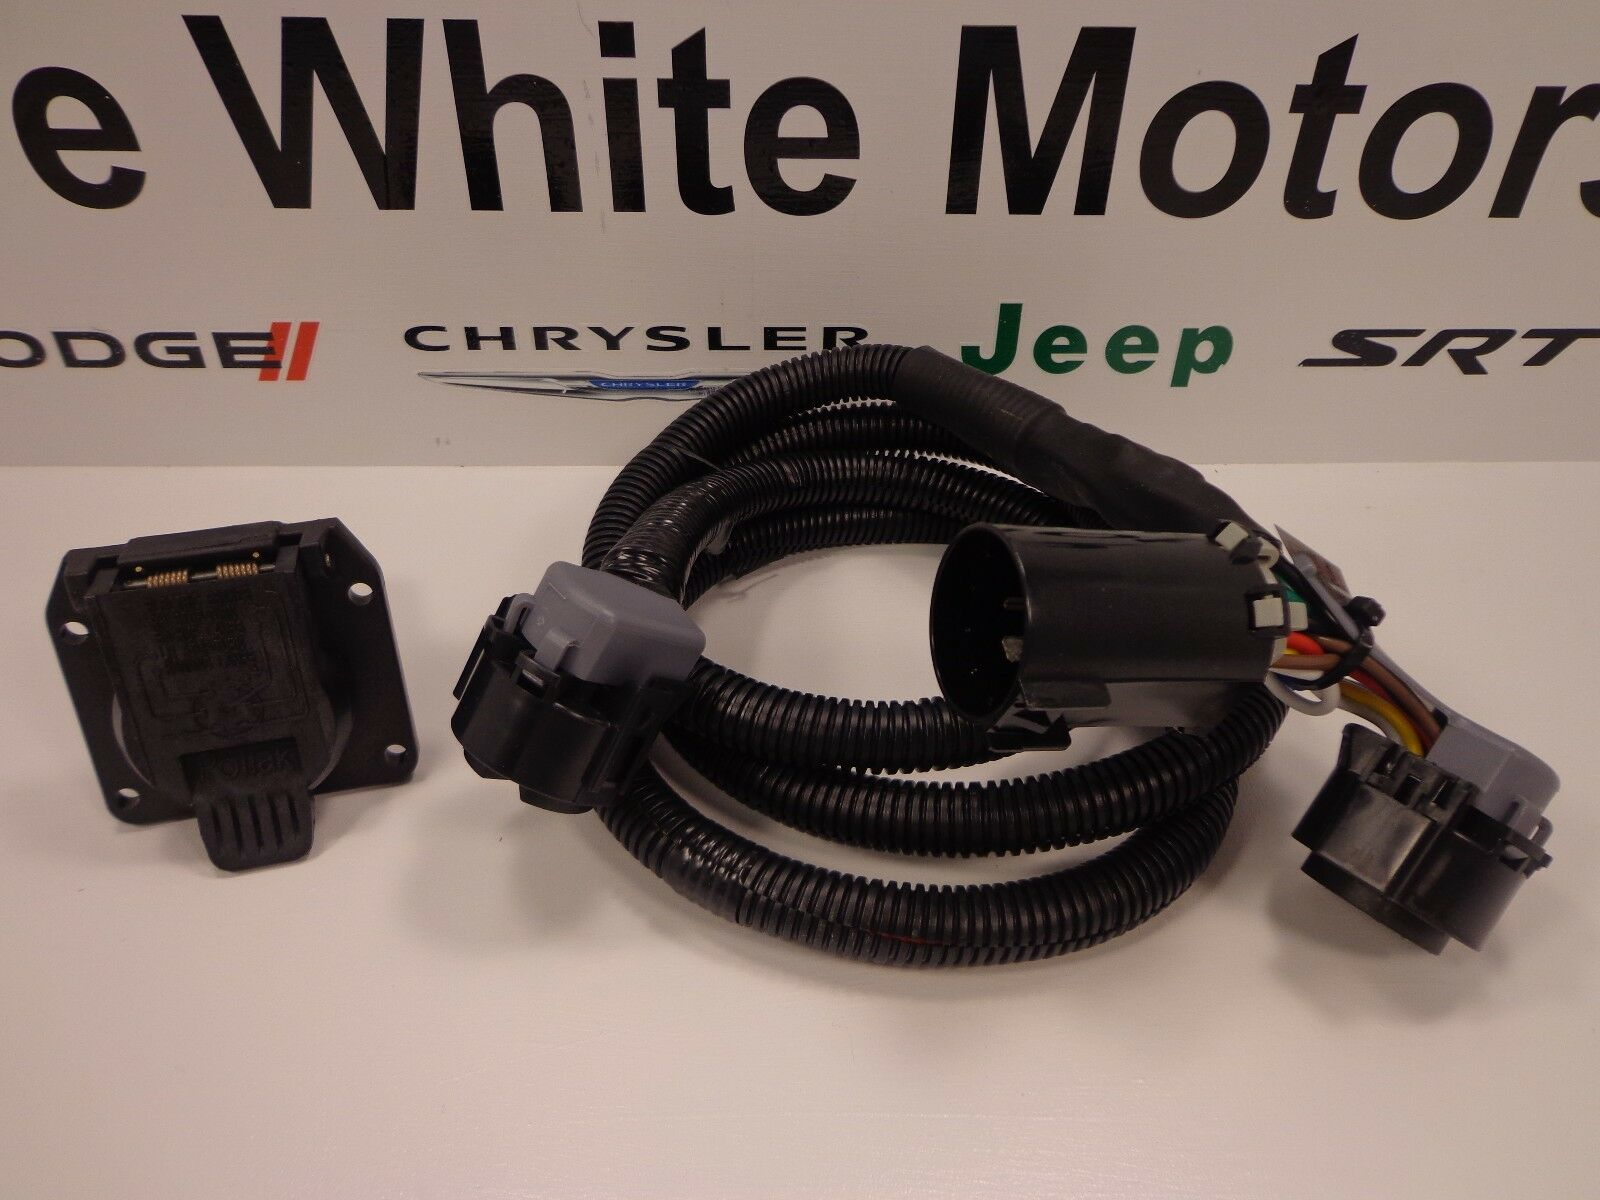 5th Wheel Wiring Harness For Dodge Diagrams Fifth Trailer 13 18 Ram 2500 3500 Kit Gooseneck 7 Blade Connector